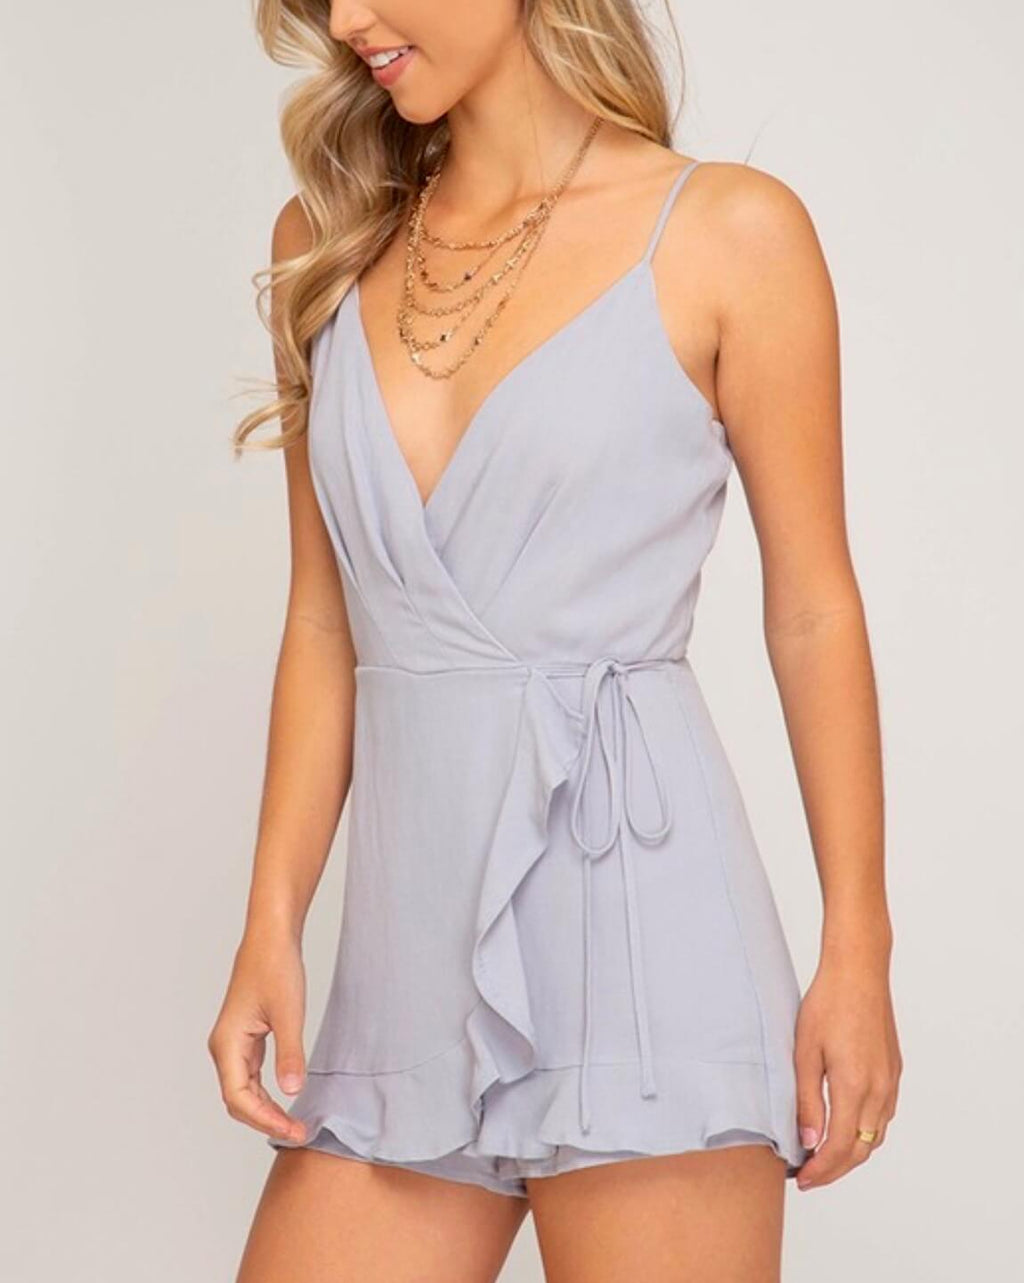 a157662495f8 indie boho rompers + jumpsuits for women shophearts.com